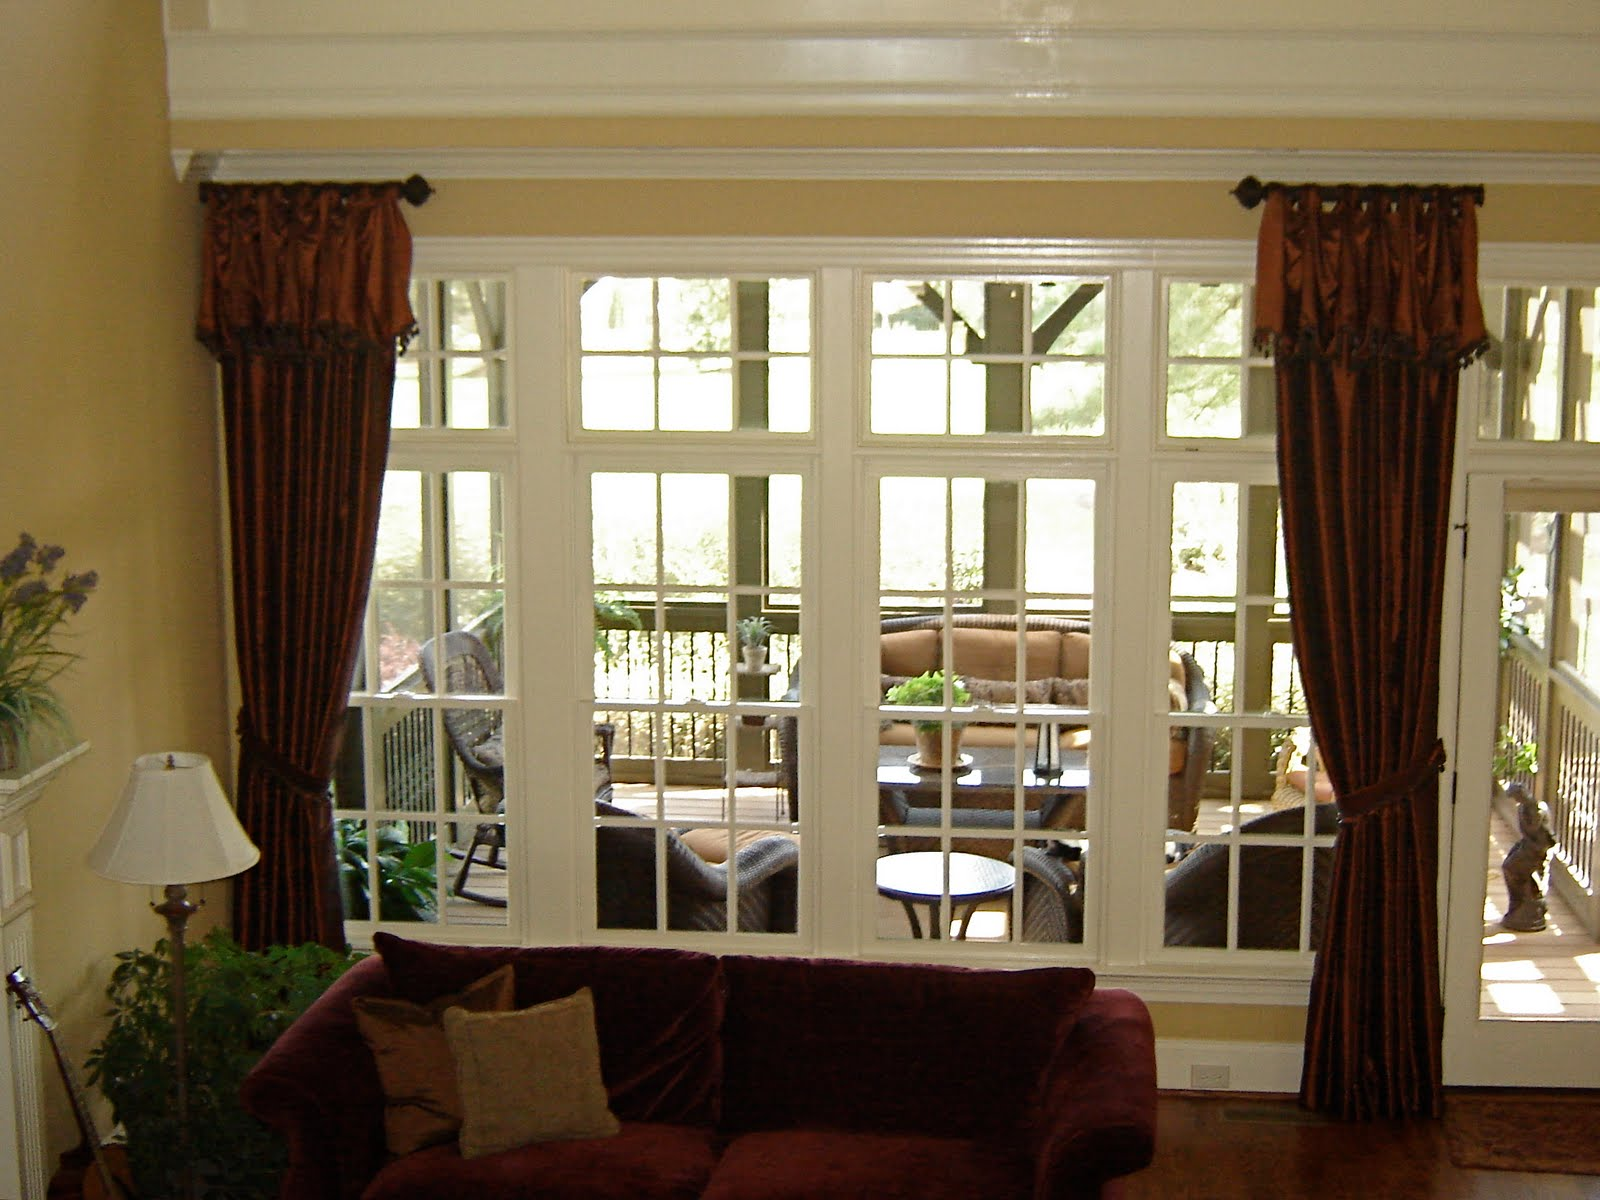 In stitches window treatment ideas for Window treatment ideas